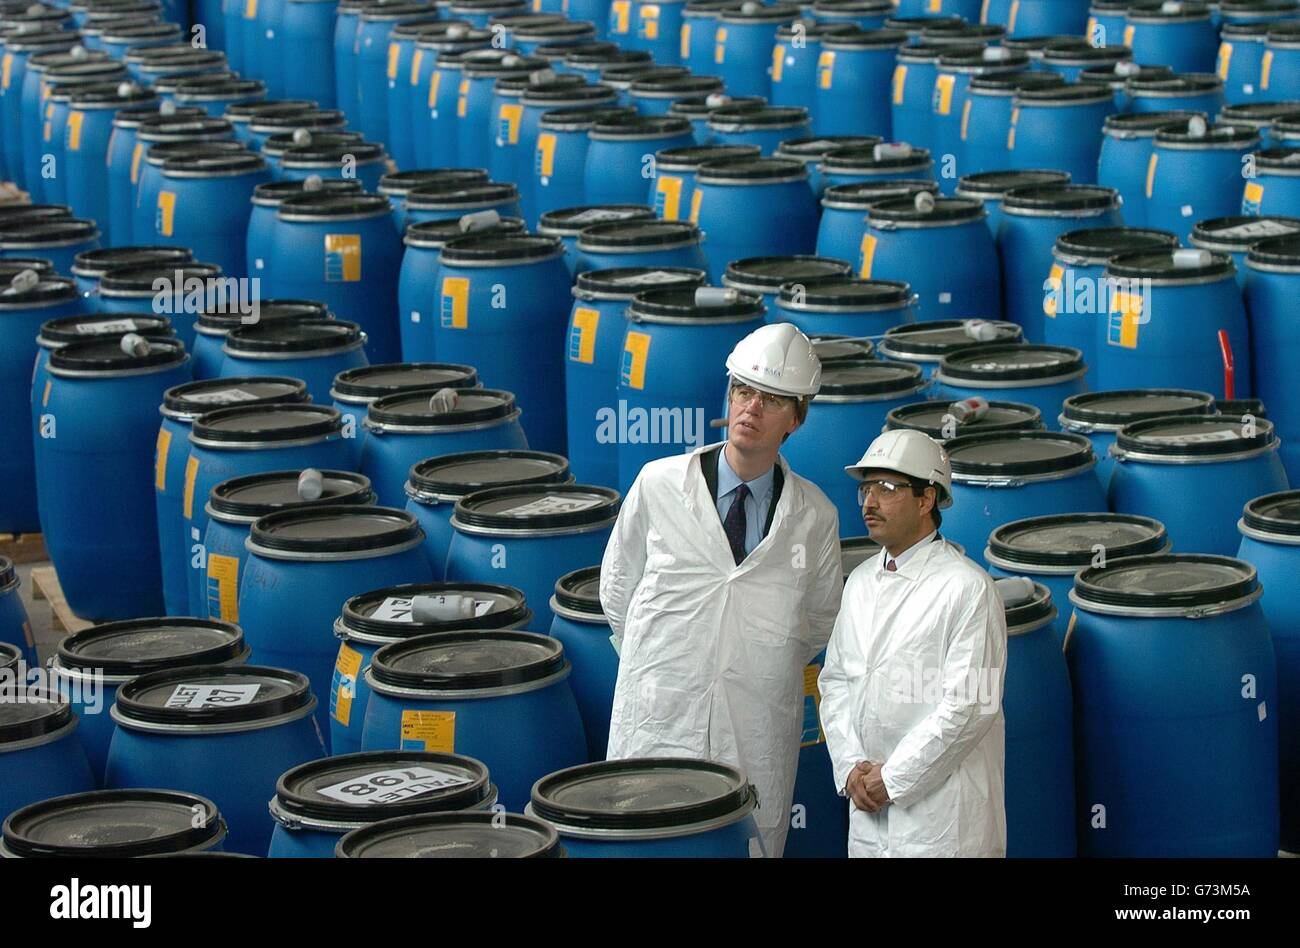 Stephen Timms - Nuclear Decommissioning - Stock Image